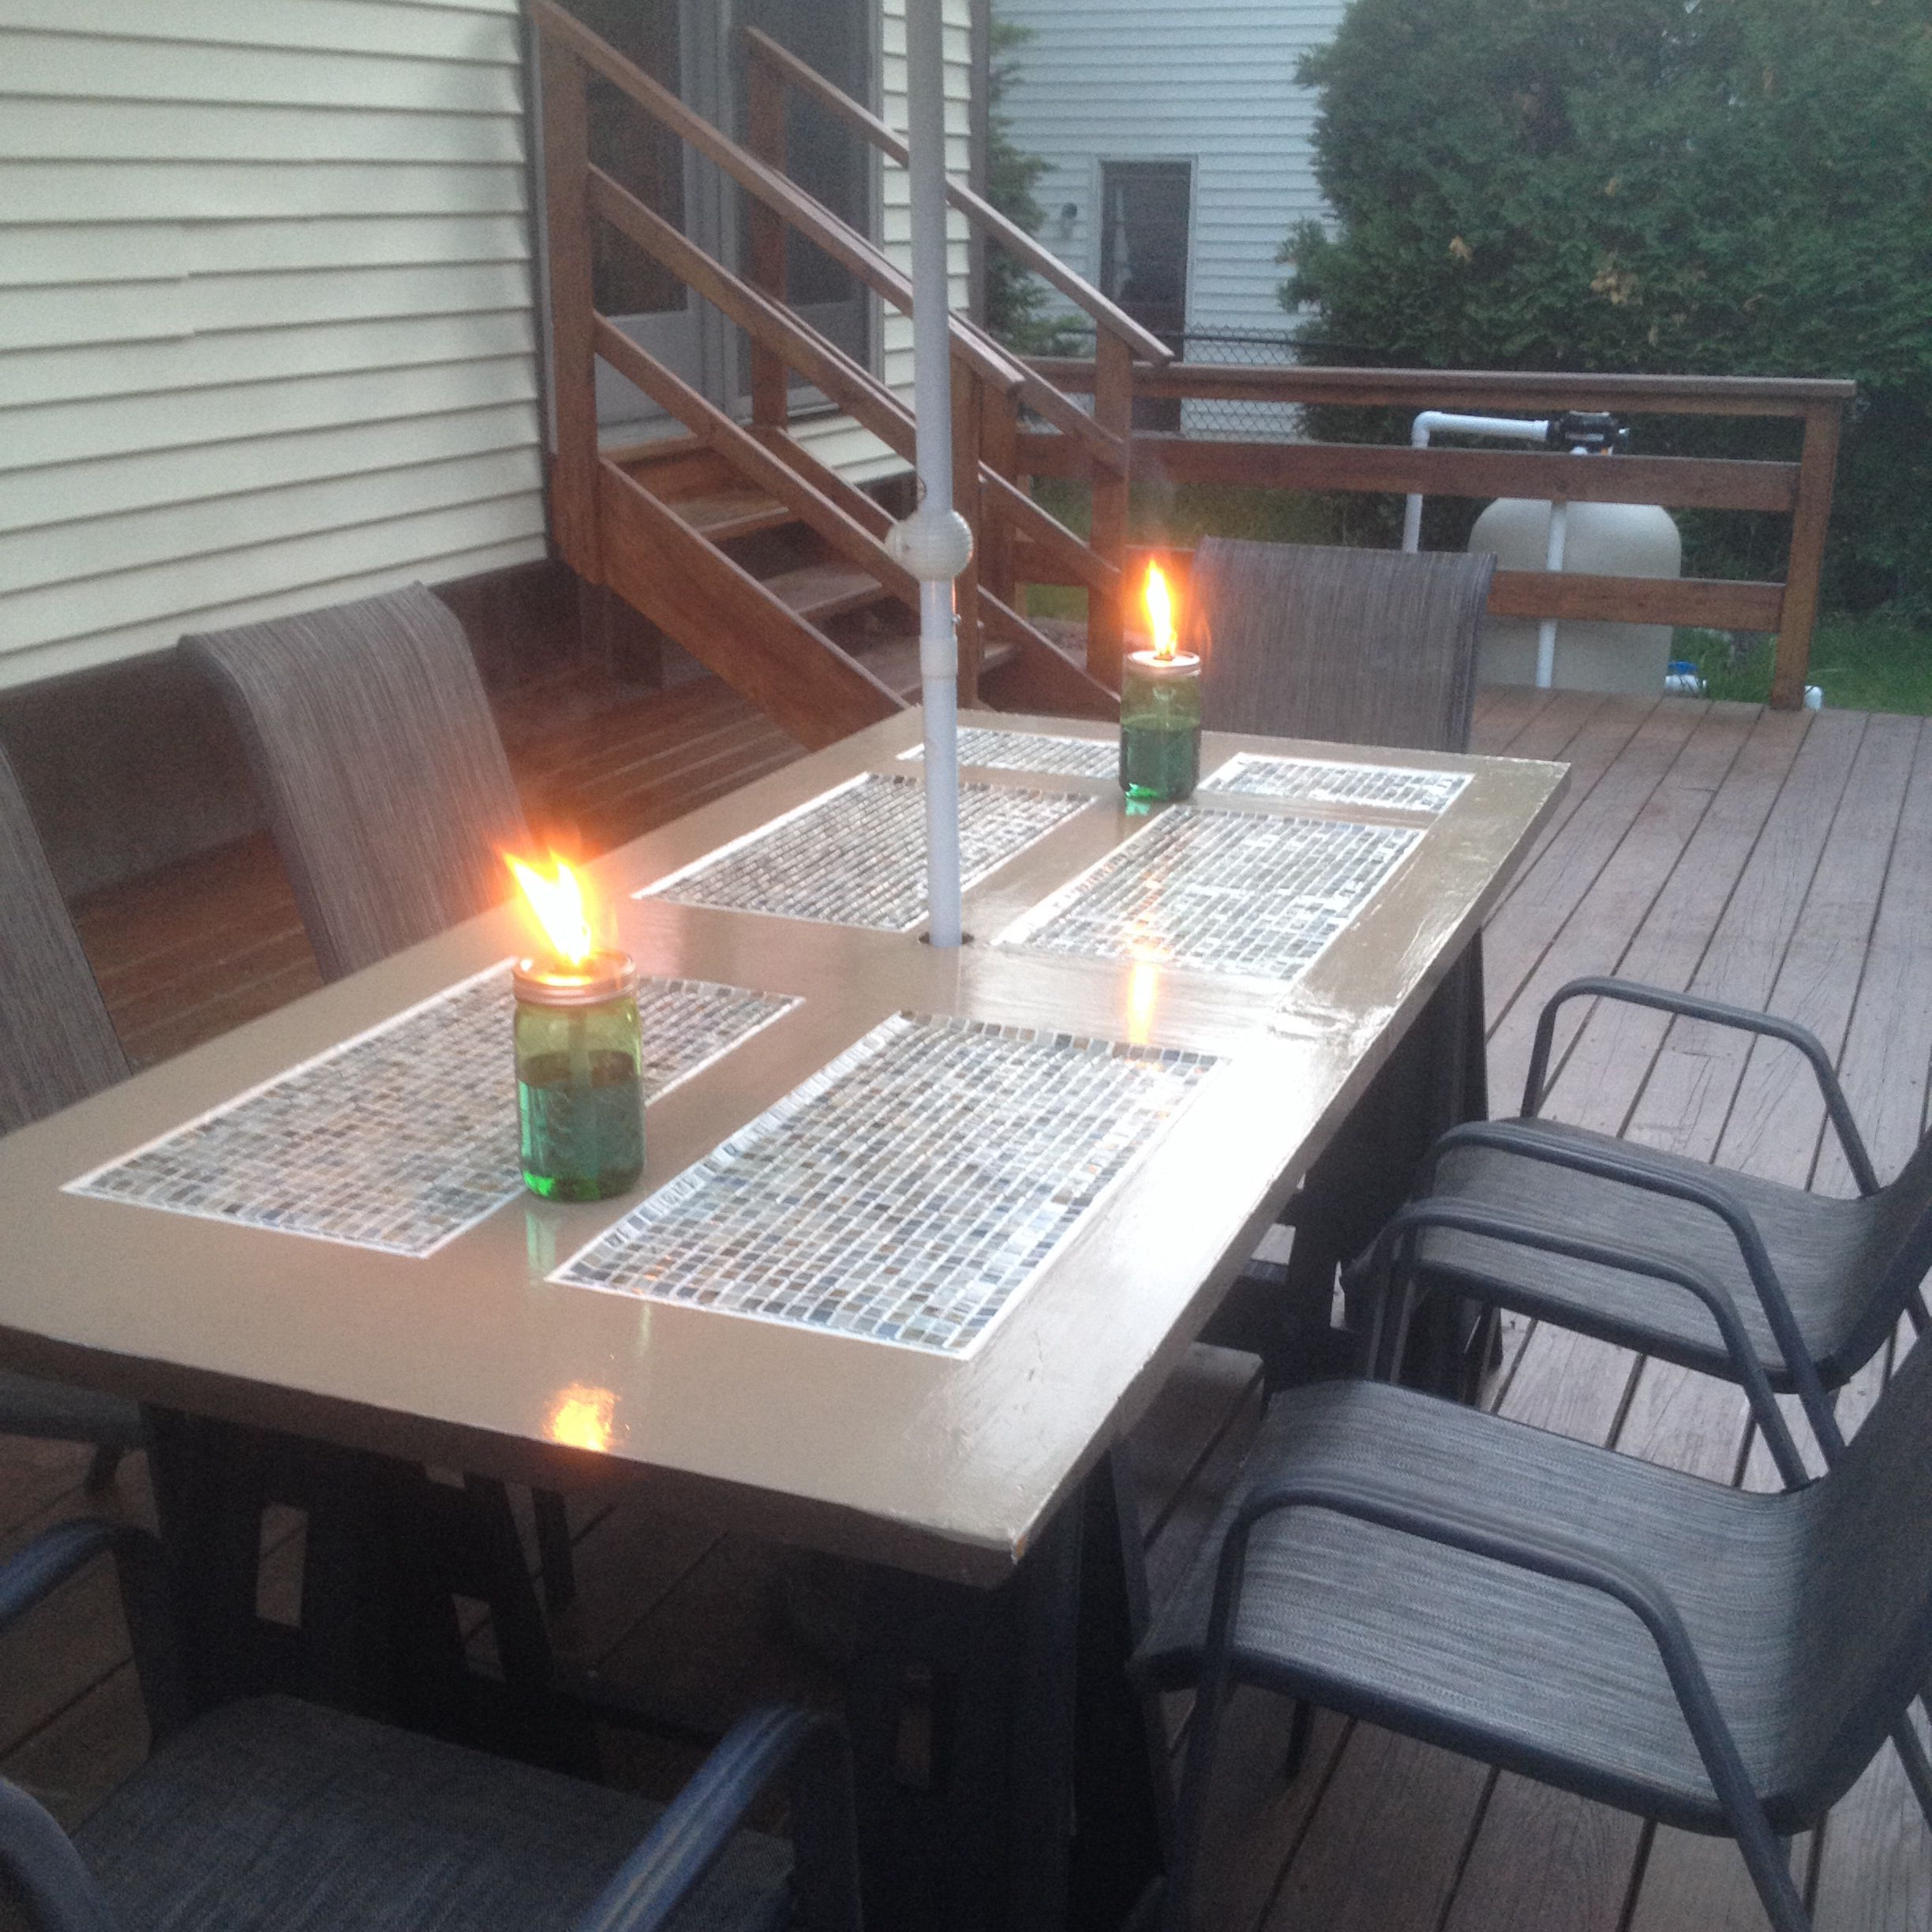 patio table made from a wooden door that we got from the habitat